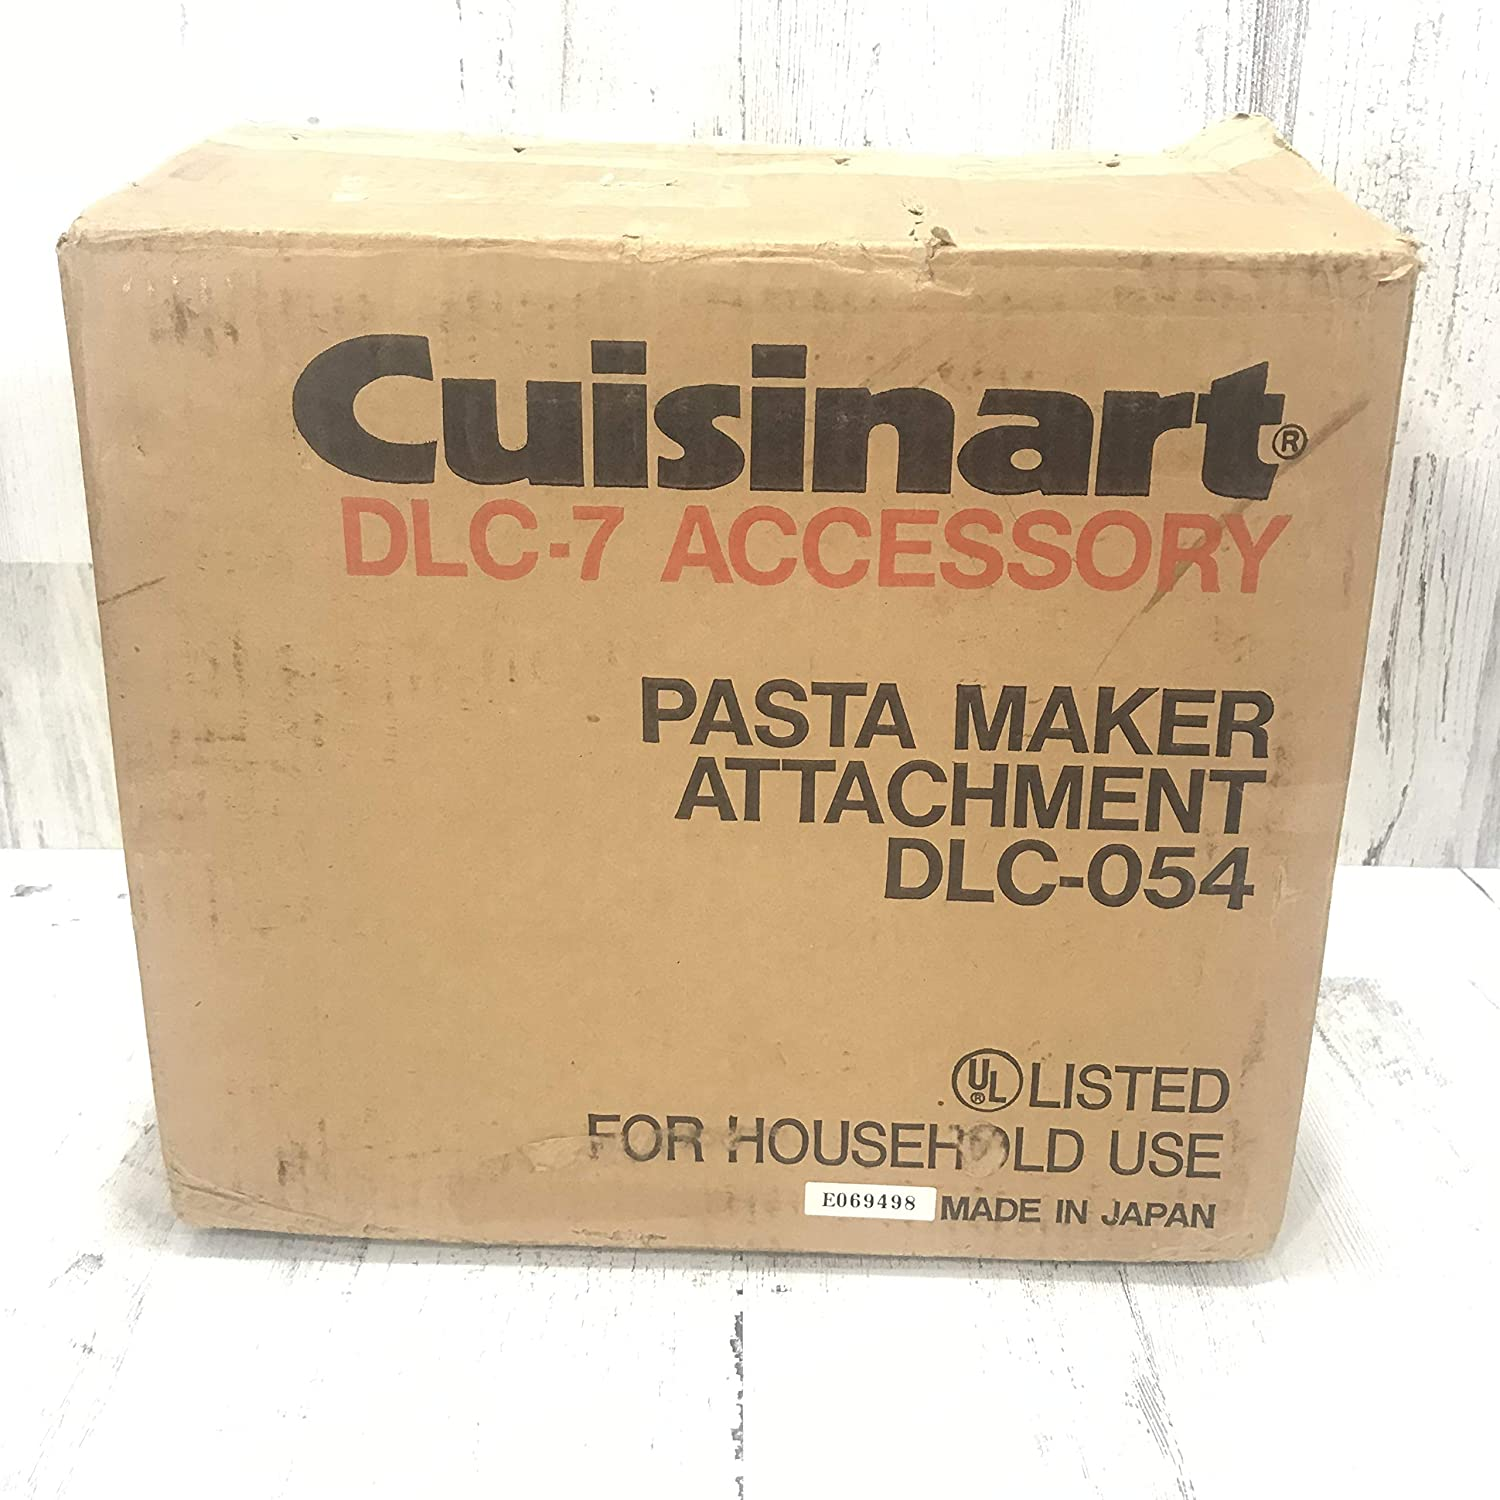 Cuisinart DLC-054 Pasta Maker Attachment for DLC-7 Food Processor